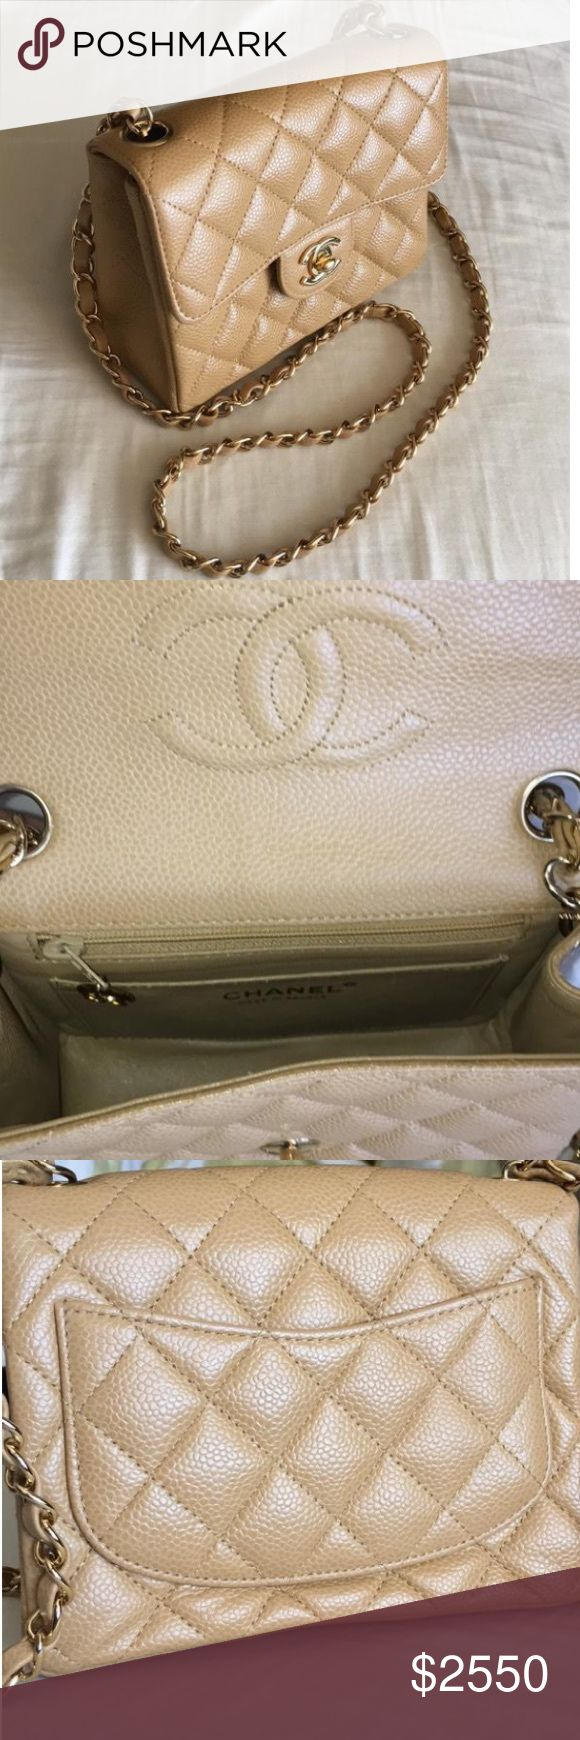 Chanel Caviar Mini Flap Bag CHANEL classic square mini flap bag in Caviar leather. Excellent condition with no rubbing, peeling, color transfer, odor, etc. all hardware in fully functioning condition. Iconic piece. CHANEL Bags Mini Bags